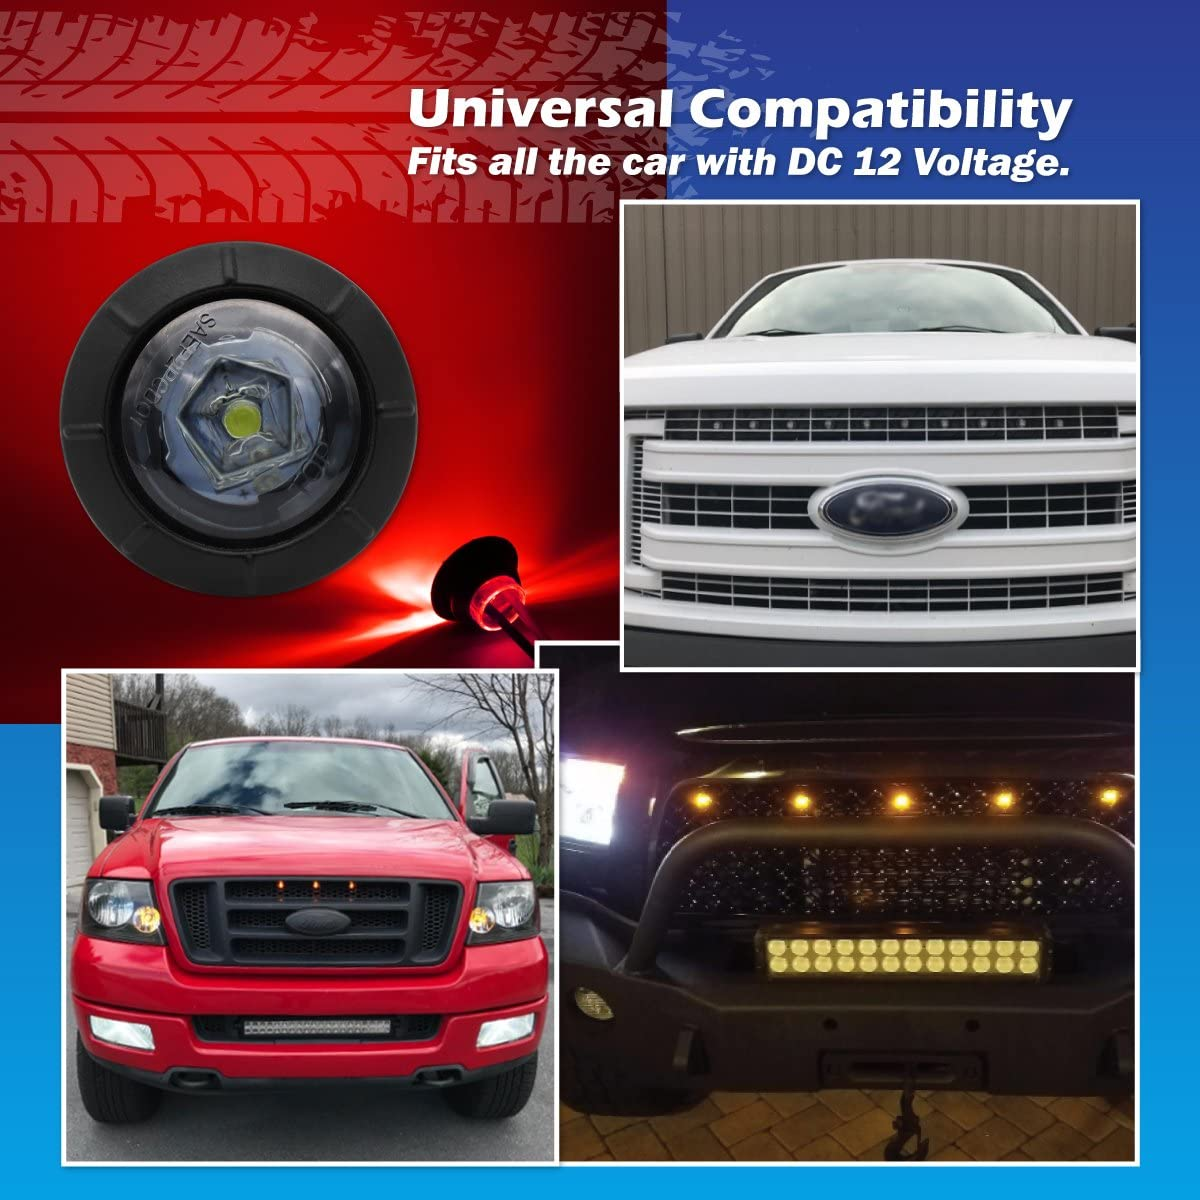 Special Generation 3//4 inch Round Smoked Lens 5 Amber Meerkatt Pack of 10 5 Red LED SMD Side Marker Clearance Indicators Lights 2 Pin Plug black rubber grommets Trailer Boat RV Truck 12V DC XT-DC